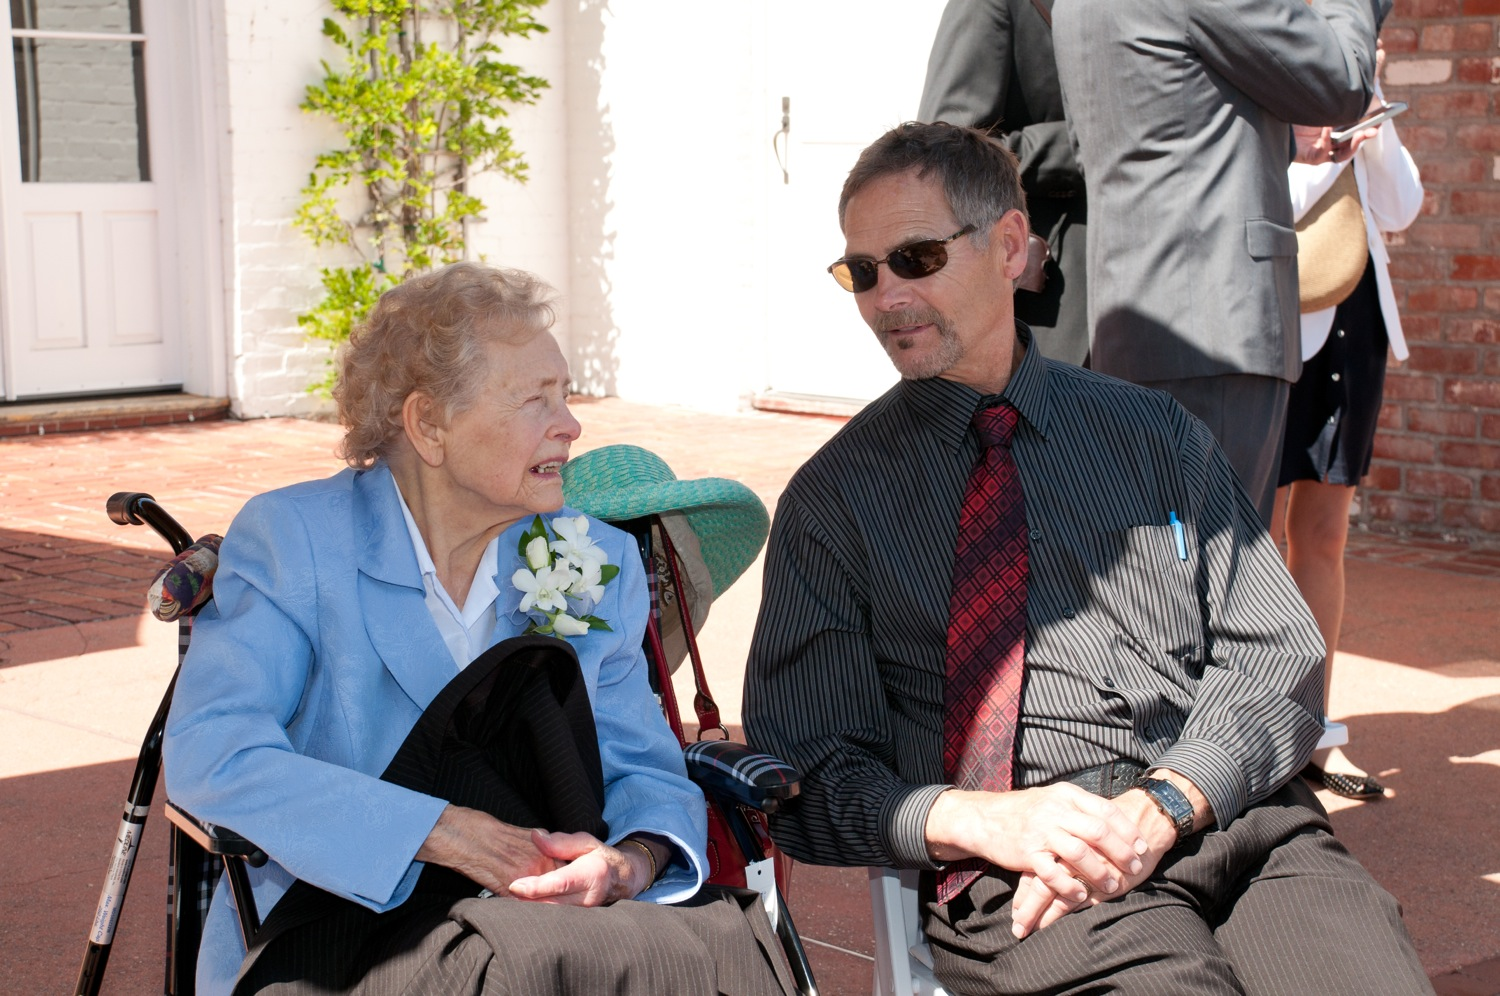 Grandma Mary and Tim relax before the ceremony.